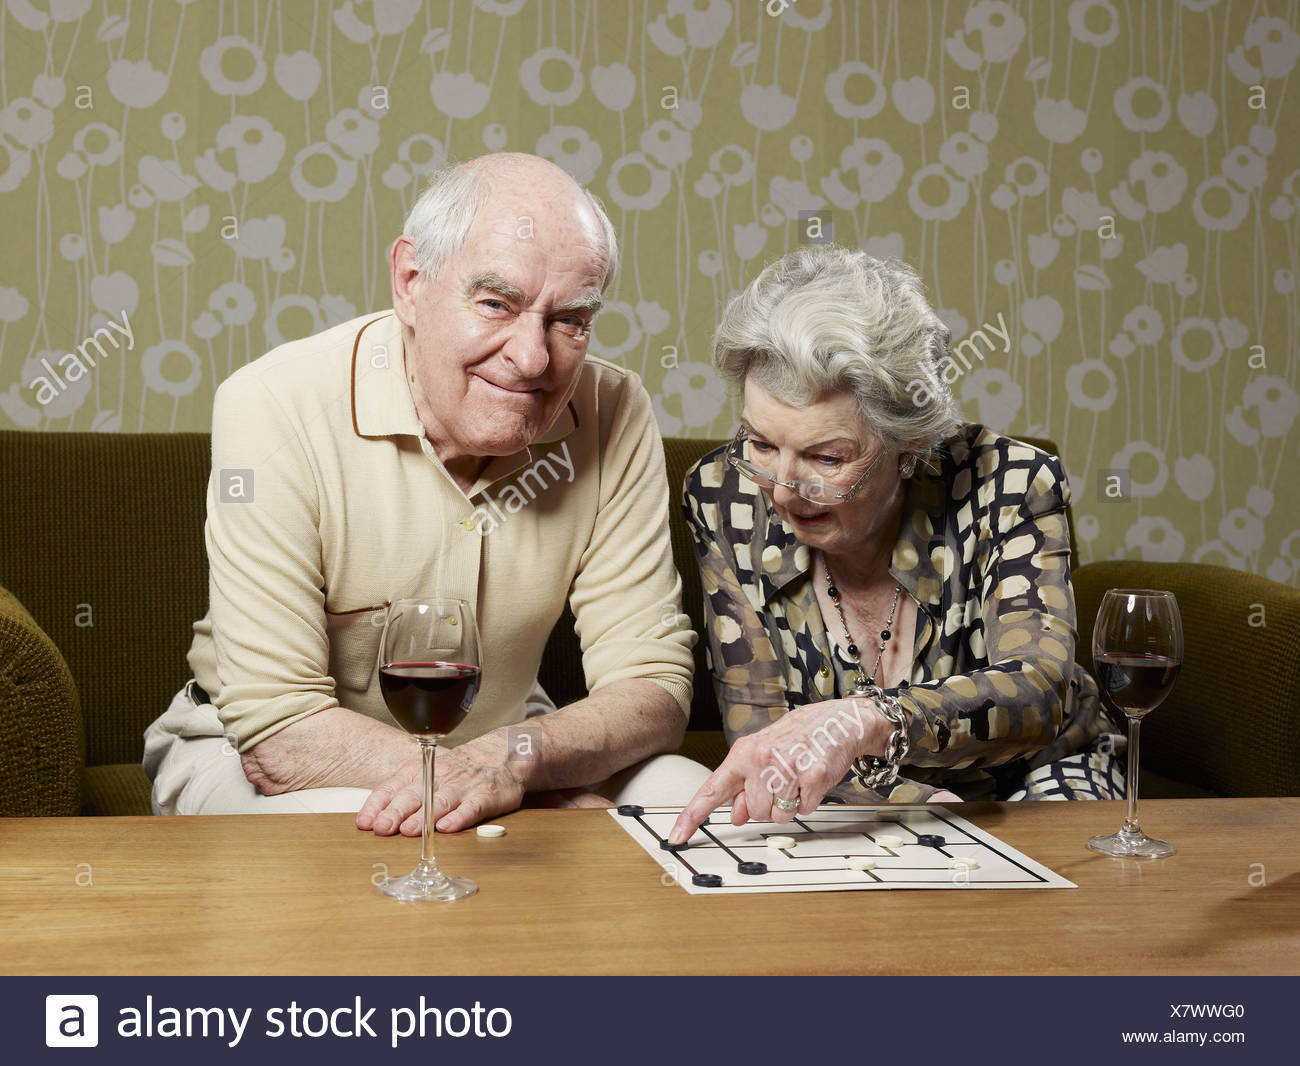 Senior man grimaces as senior woman contemplates a move playing muehle - Stock Image